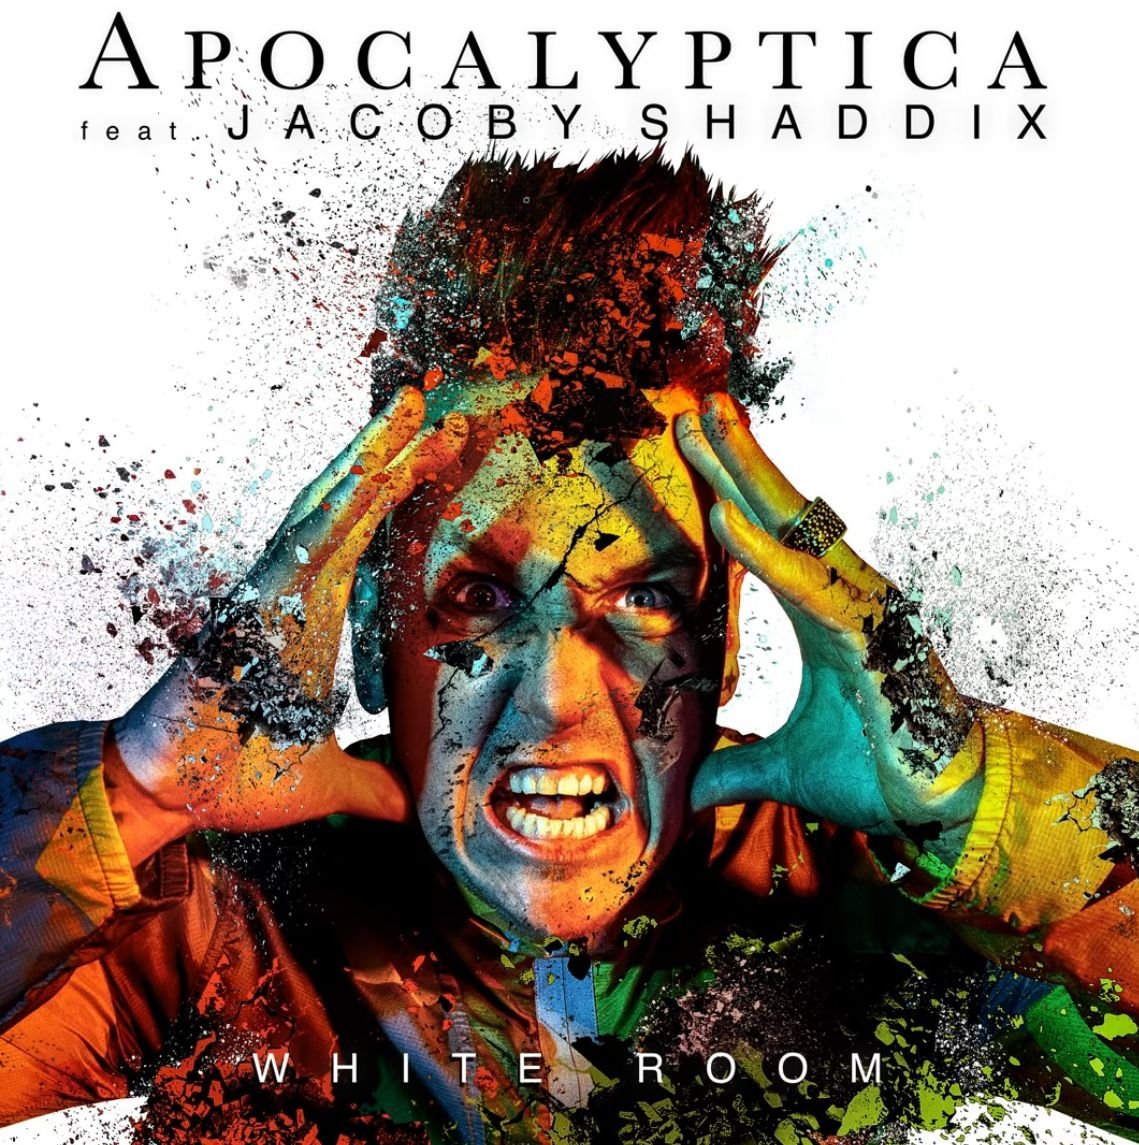 Coperta single Apocalyptica Jacoby Shaddix White Room